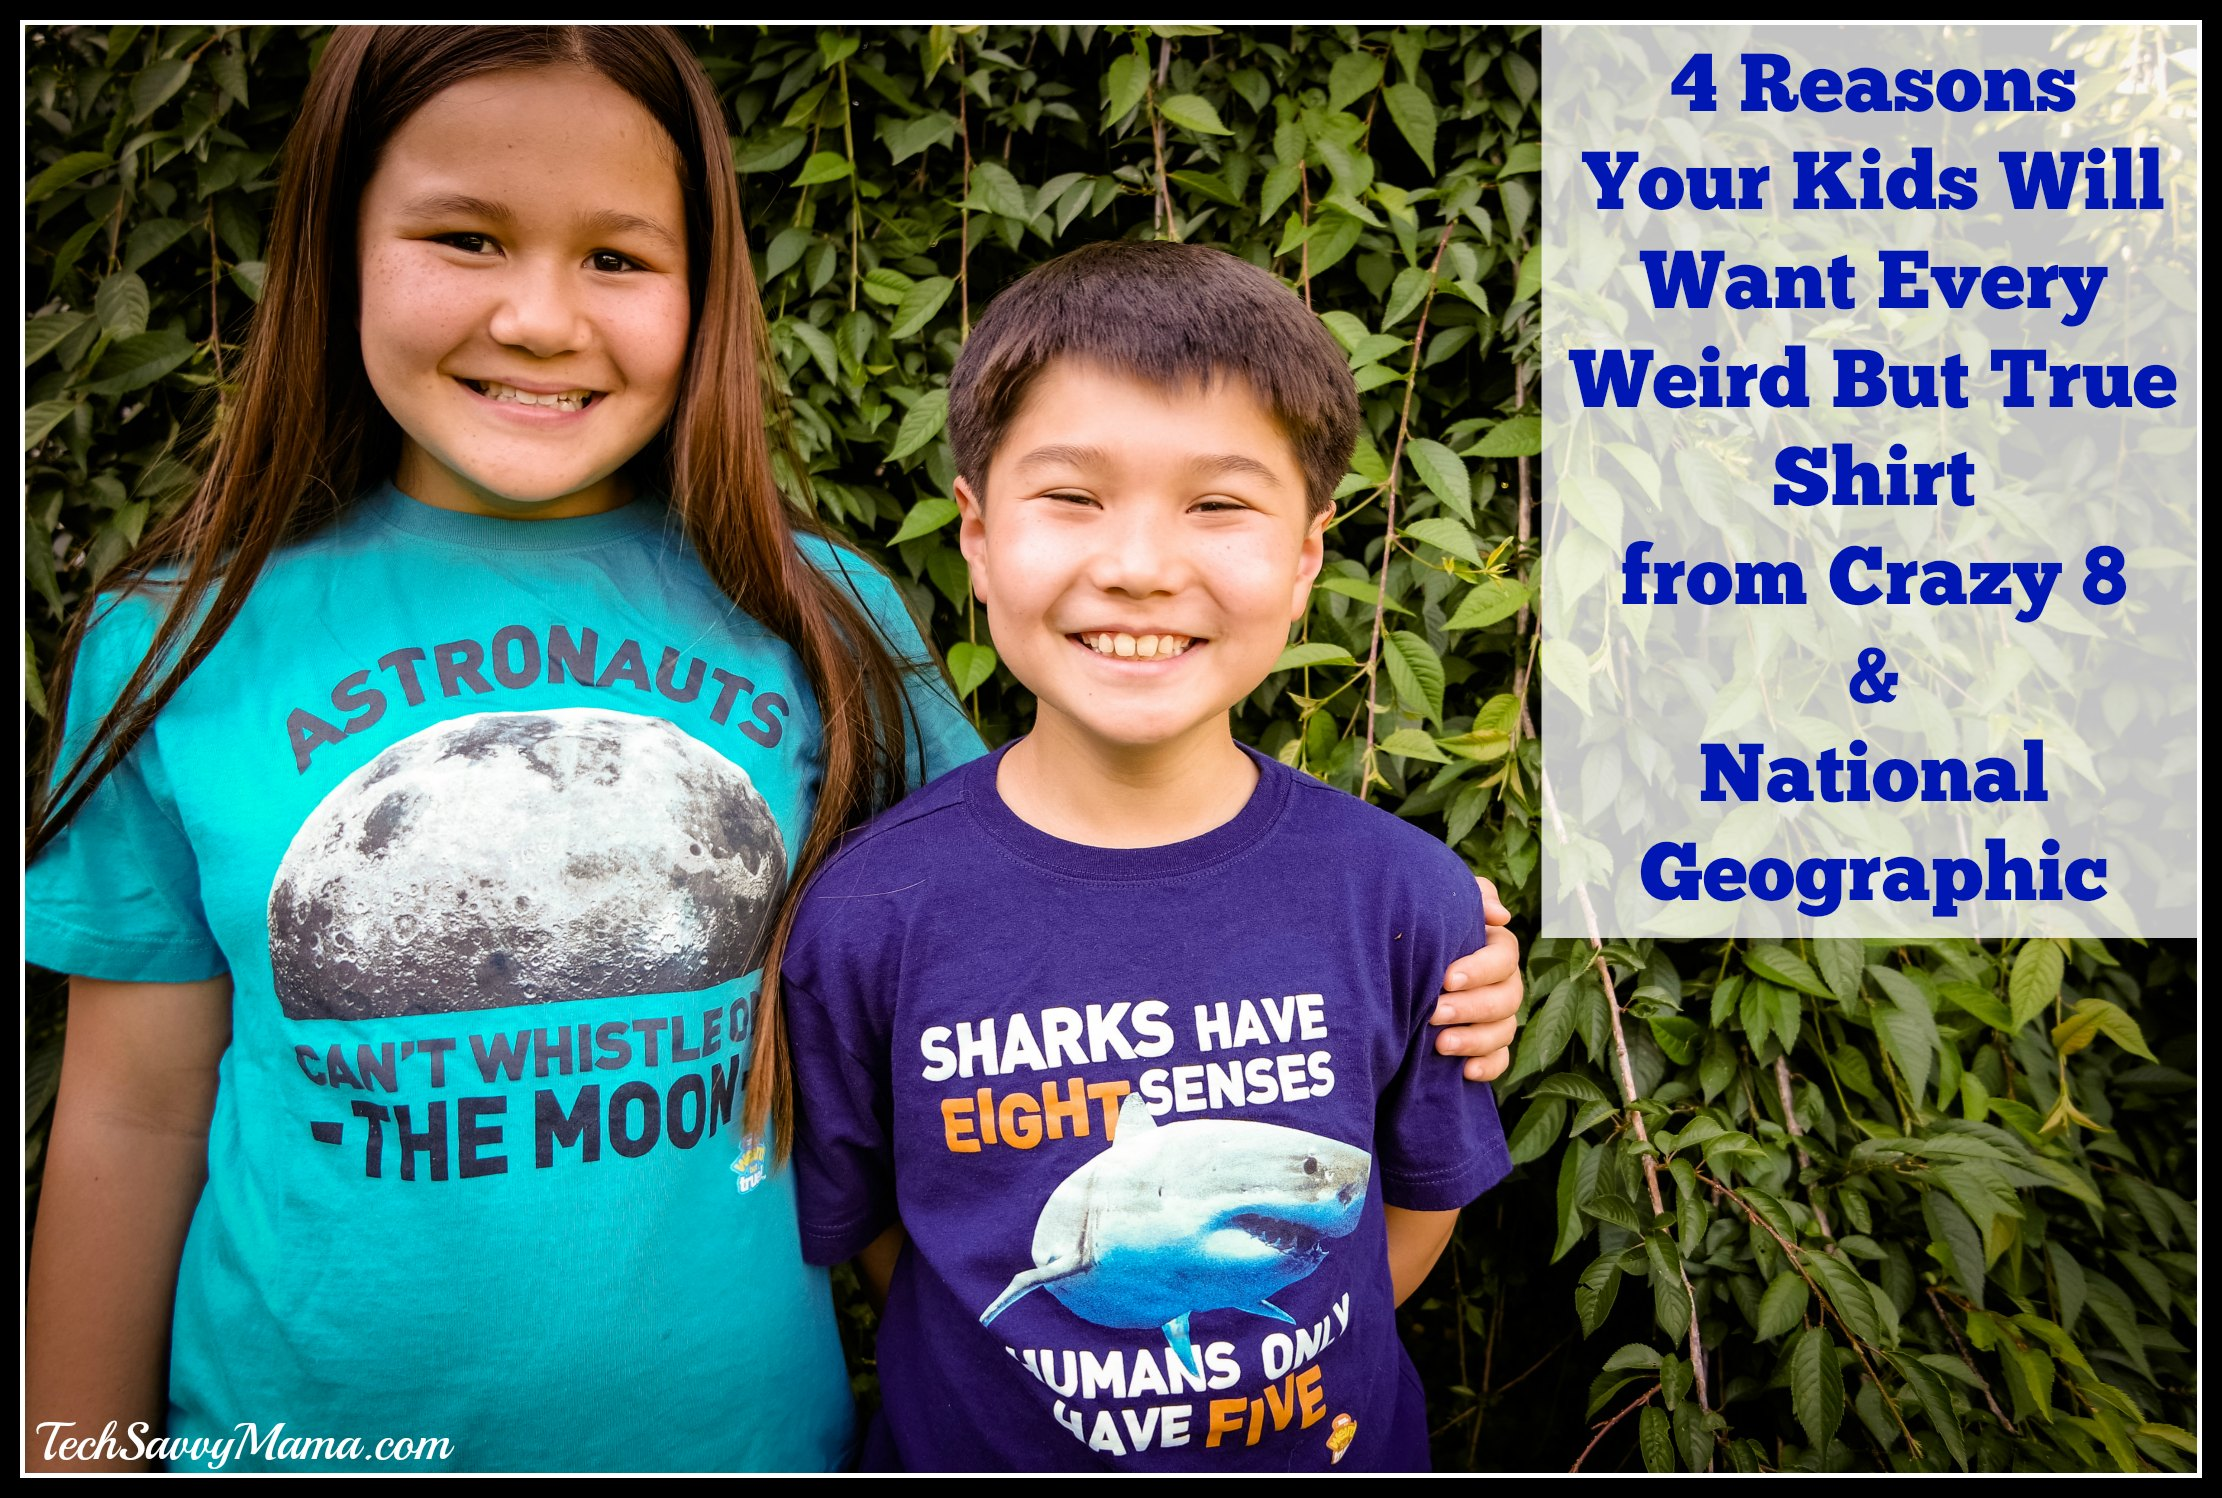 4 Reasons Your Kids Will Want Every Weird But True Shirt from Crazy 8 & National Geographic (w giveaway)